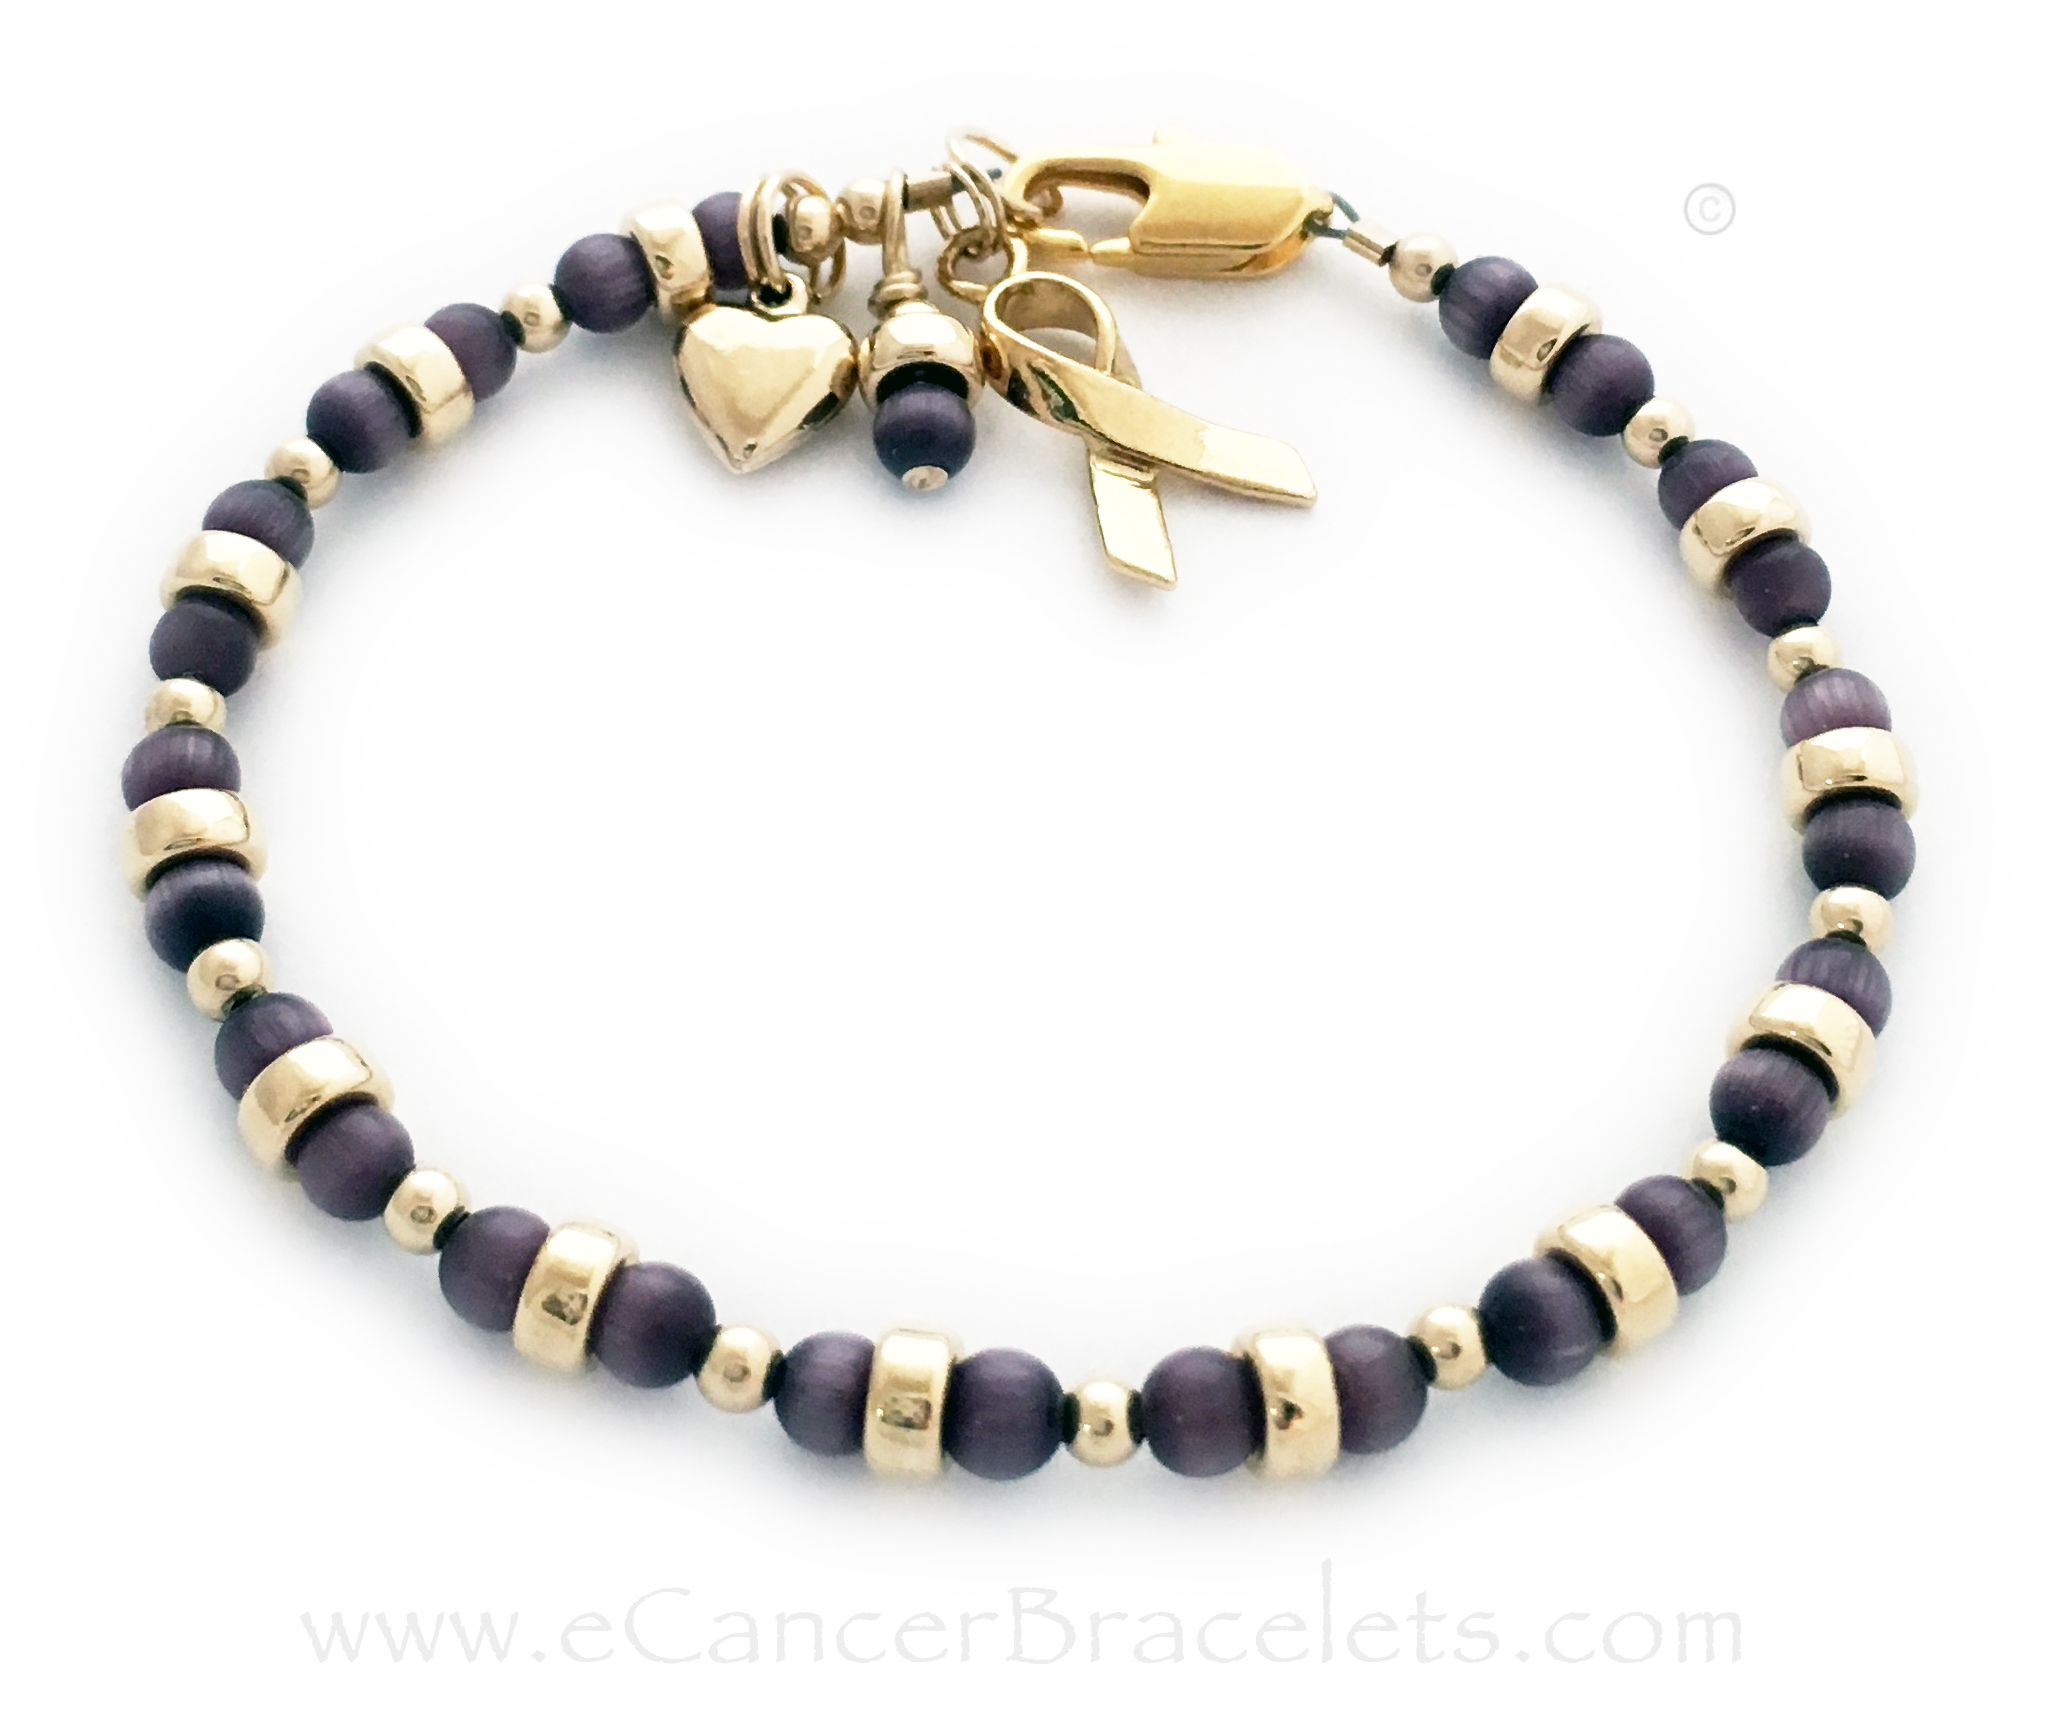 CBB-Ribbon 44 - This purple ribbon bracelet comes with the Gold Ribbon charm and purple dangle charm. Purple is shown for Pancreatic Cancer. They added the 14k gold-plated Puffed Heart Charms to their order. Size shown: 7 1/2""